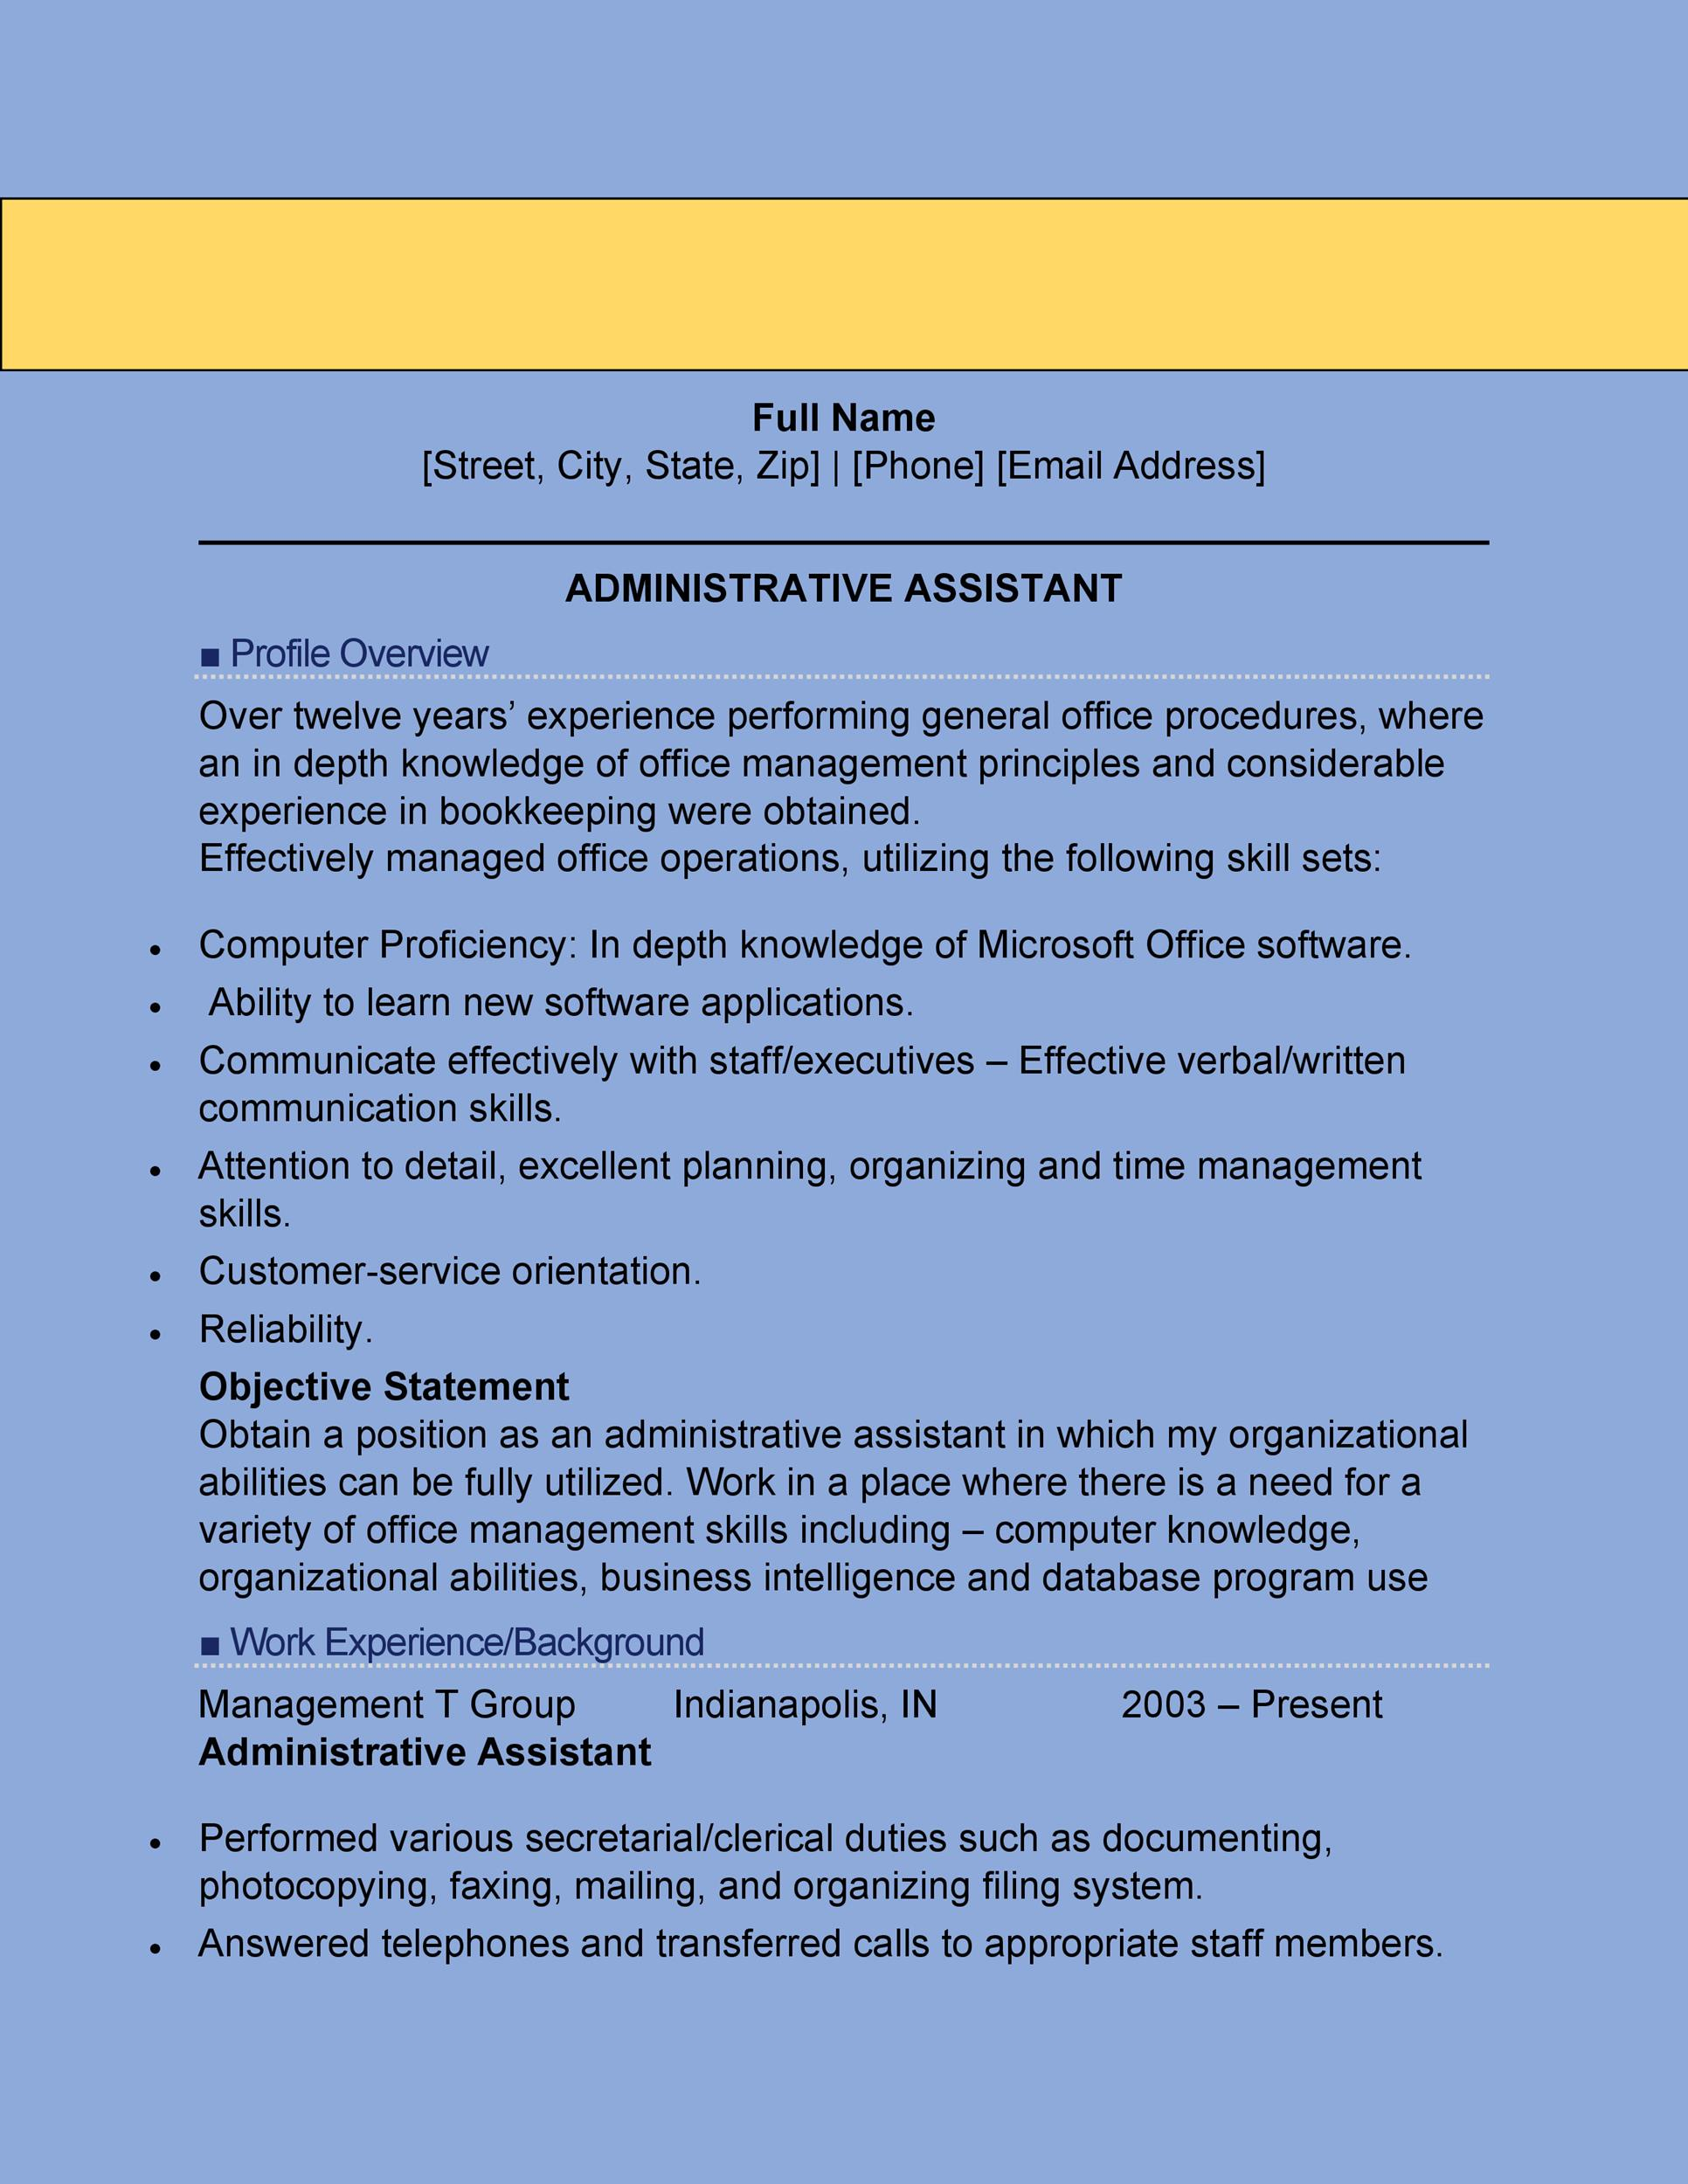 20+ Free Administrative Assistant Resume Samples - Template Lab - administrative assistant resume samples free